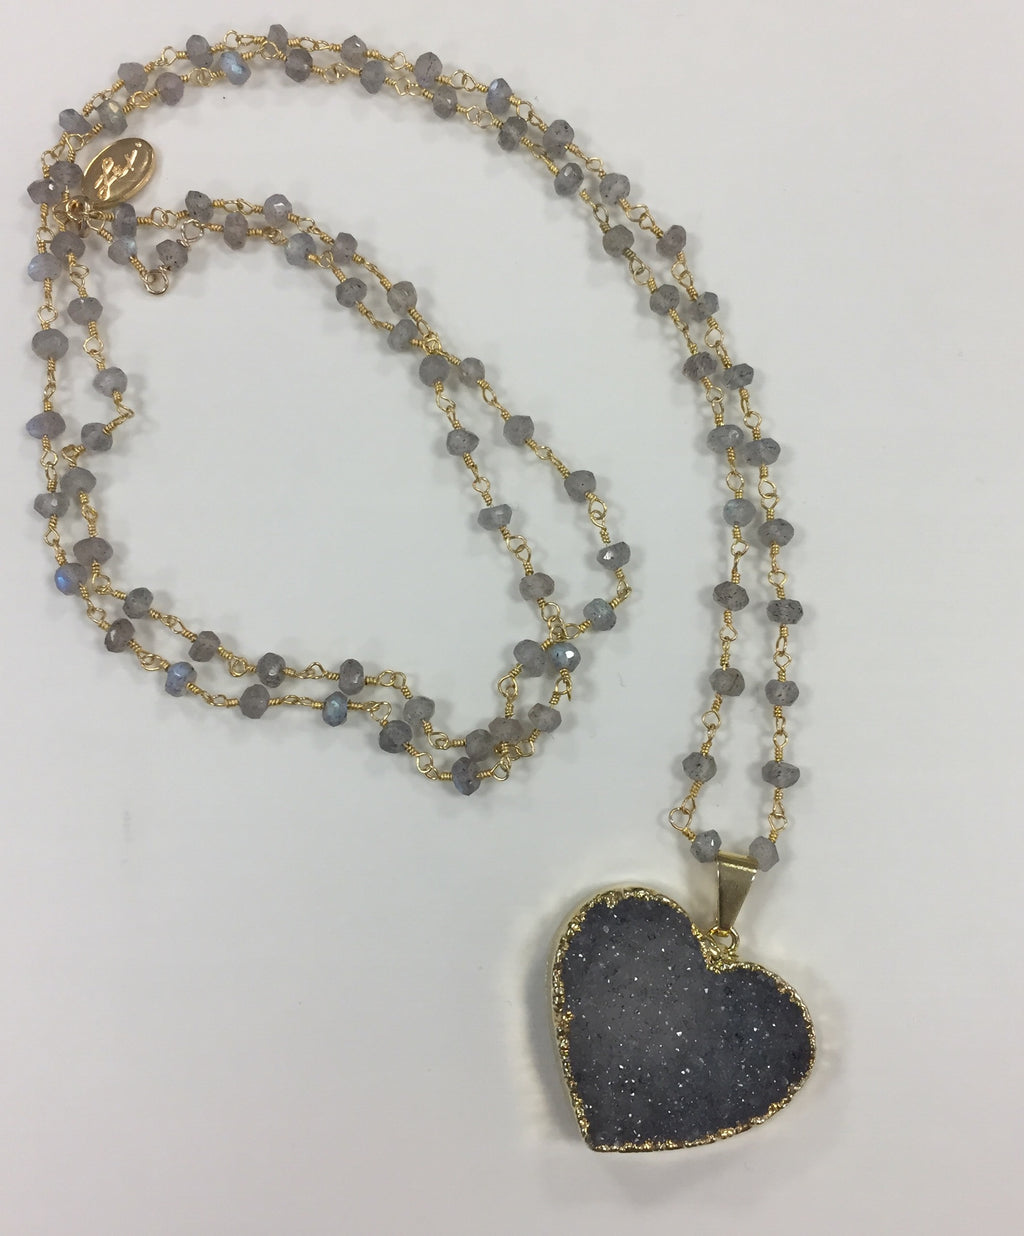 Lexi Handcrafted Quartz Large Druzzy Heart Necklace